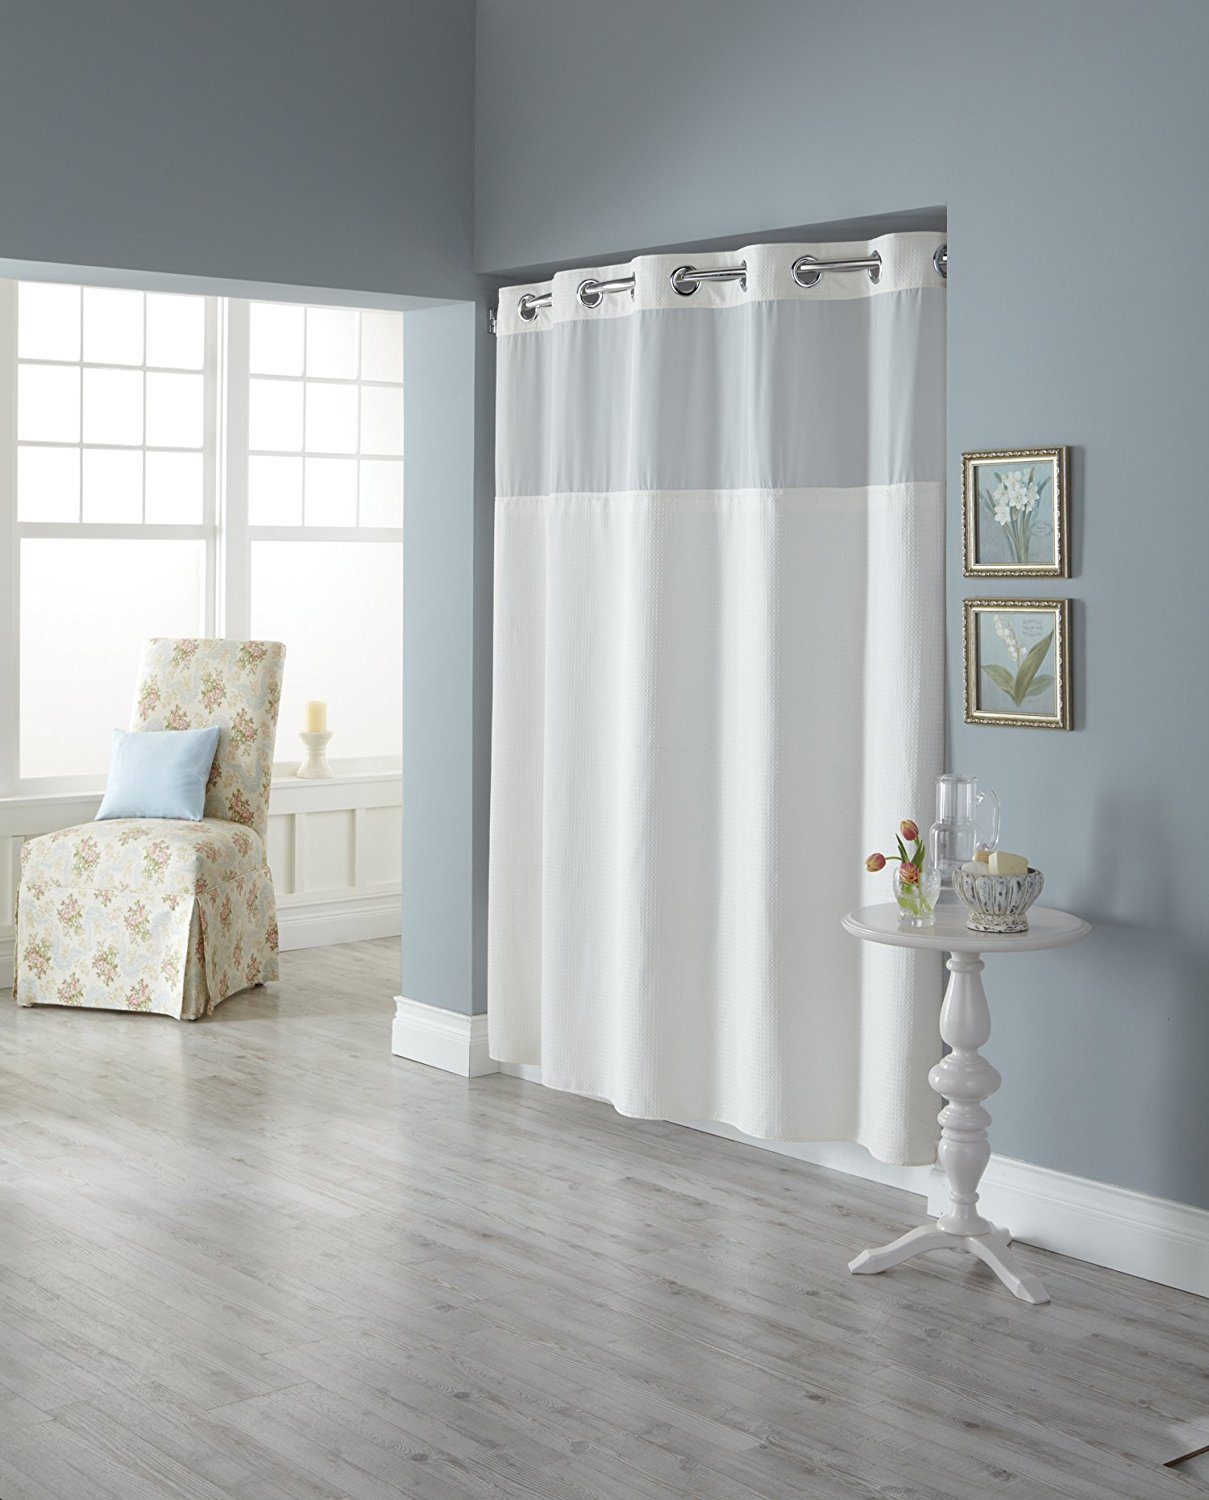 Hookless Rbh82my417 Fabric Shower Curtain With Built In Liner White Diamond Pique Walmart Com